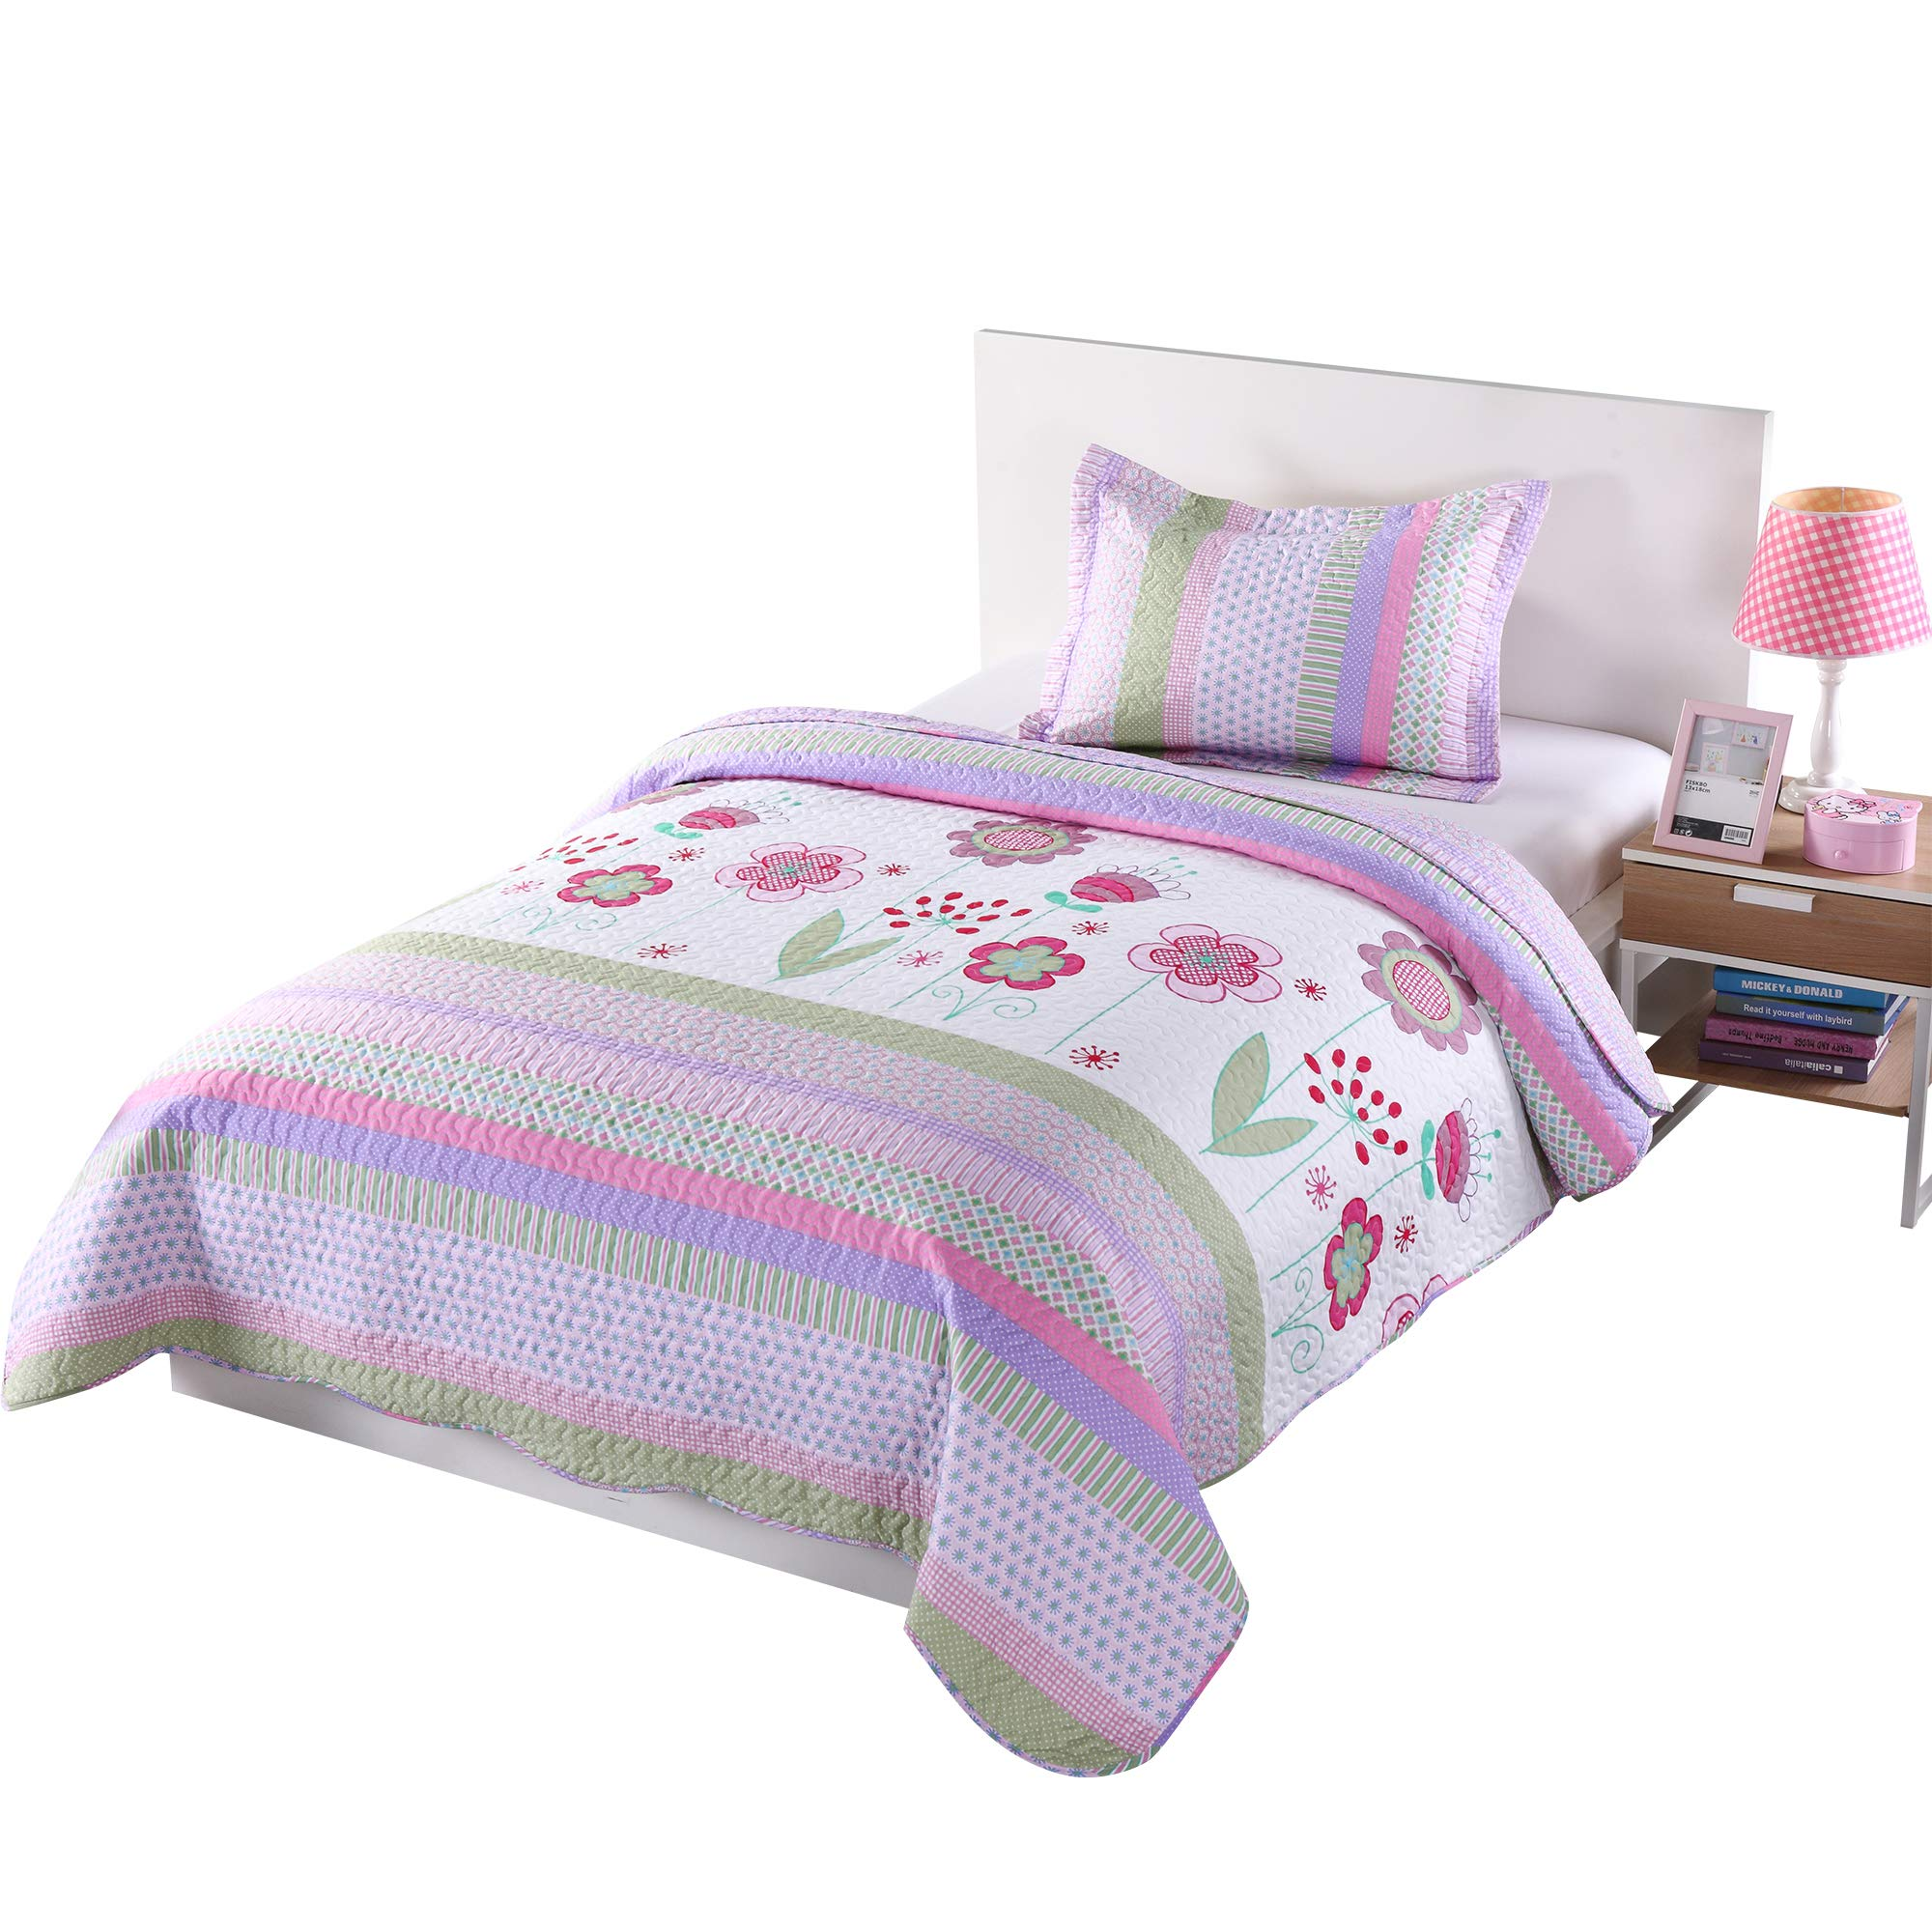 MarCielo 2 Piece Kids Bedspread Quilts Set Throw Blanket for Teens Girls Bed Printed Bedding Coverlet, Twin Size, Purple Floral Striped (Twin)